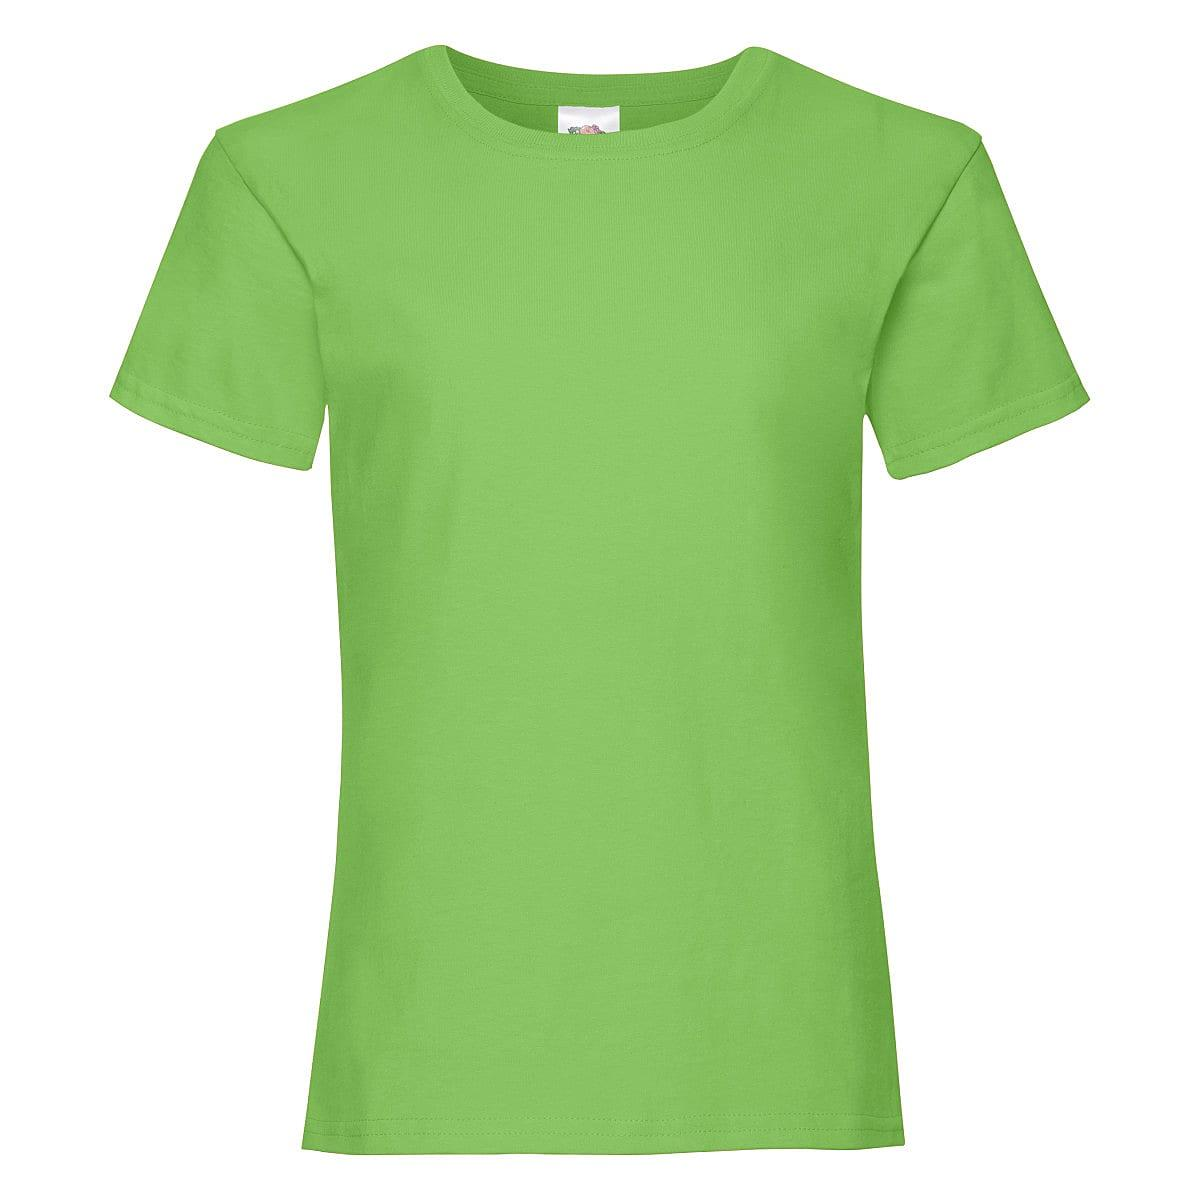 Fruit Of The Loom Girls Valueweight T-Shirt in Lime (Product Code: 61005)